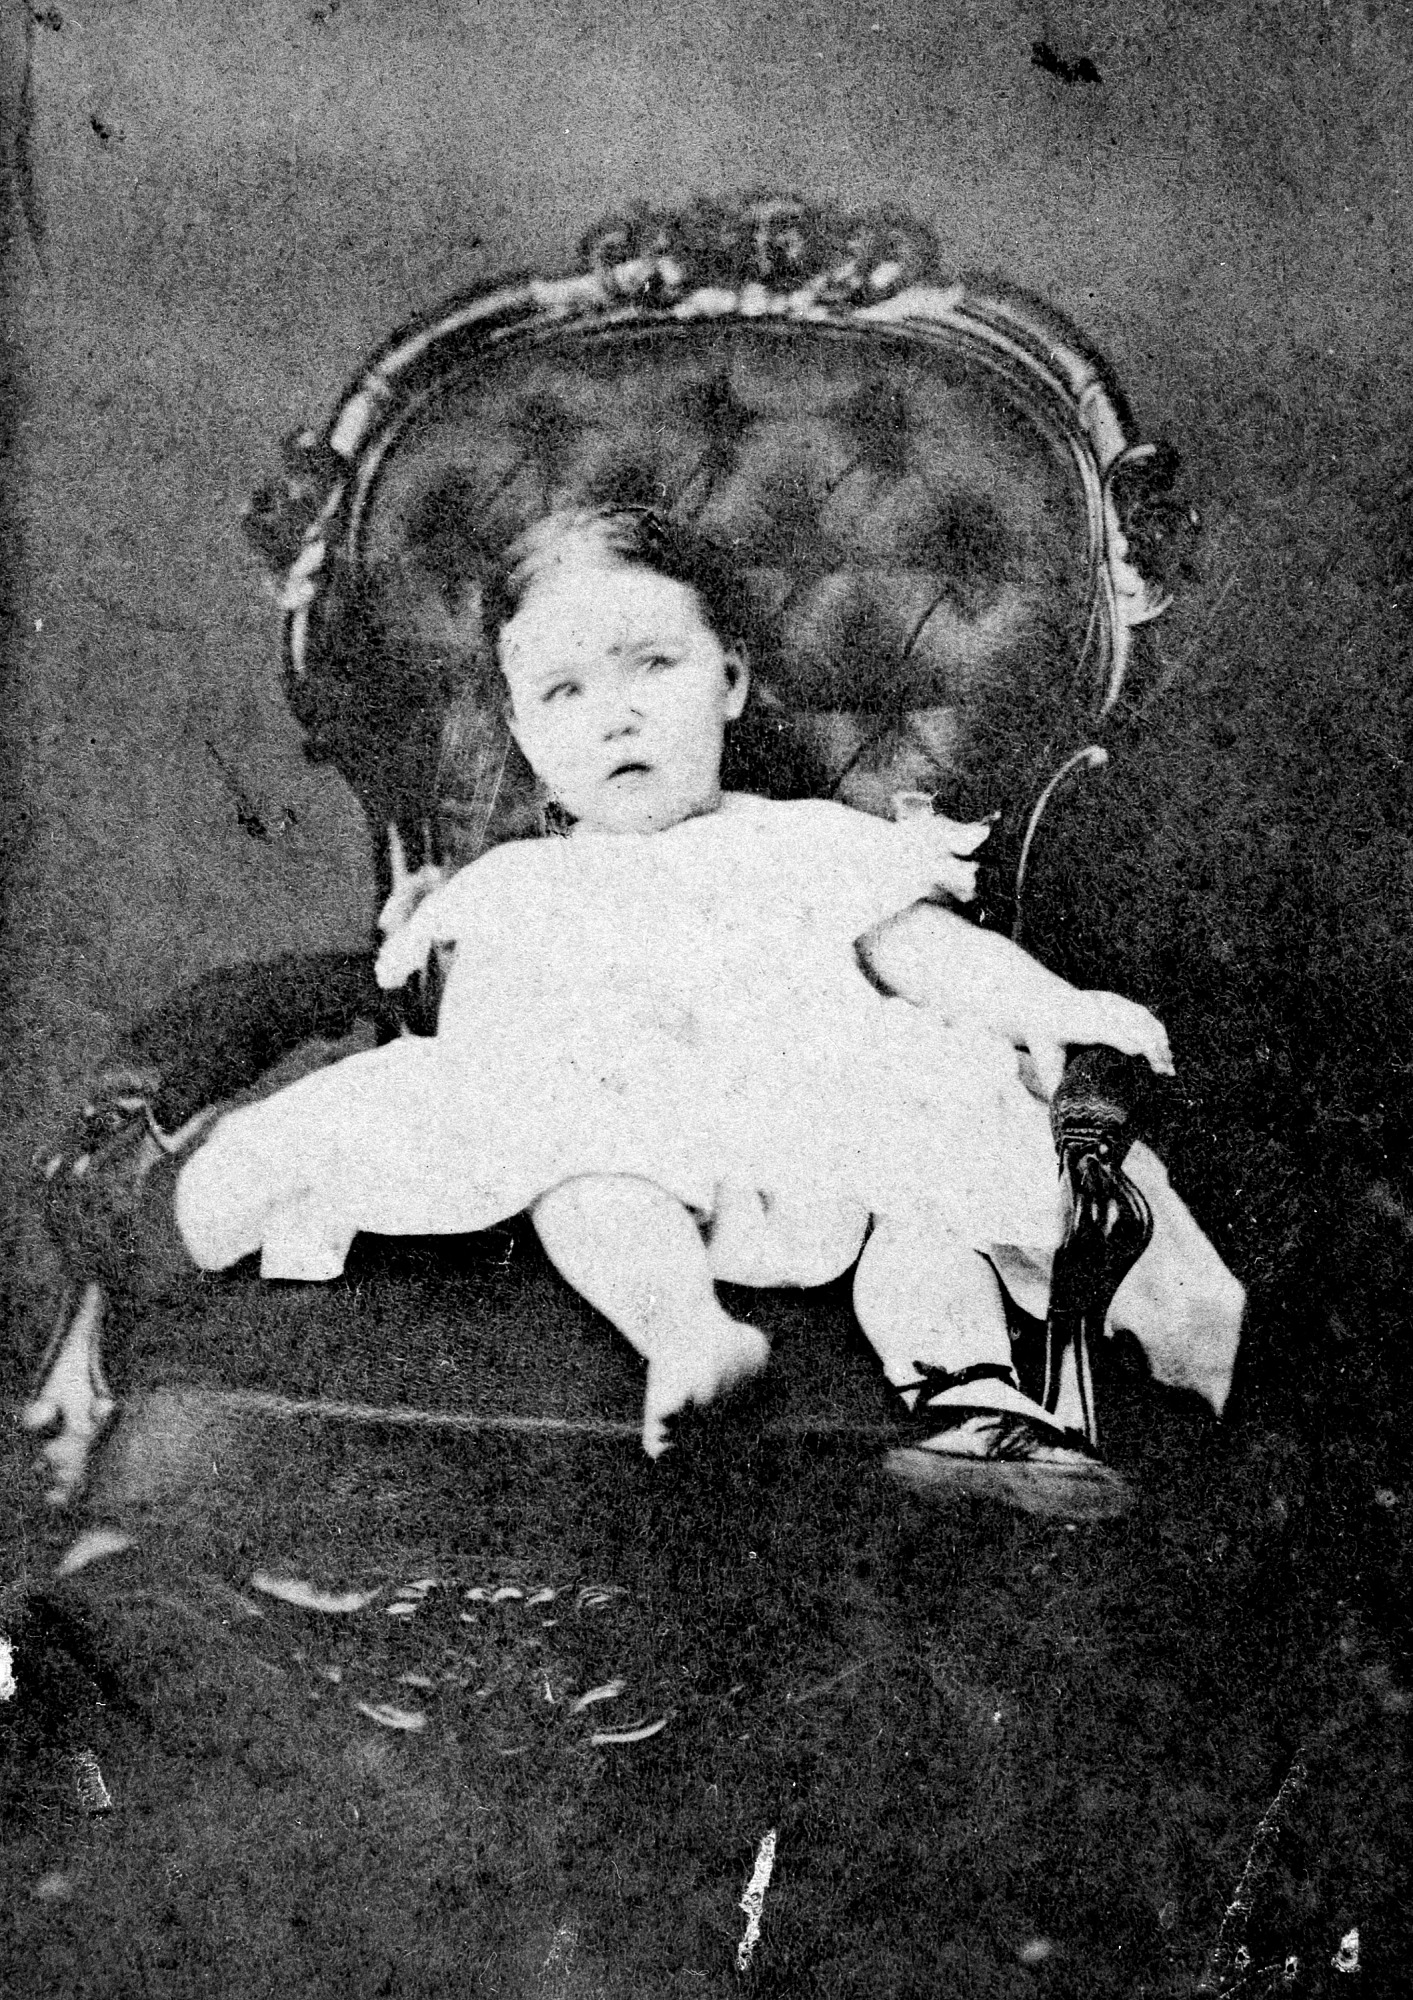 The image below is the of a young Caroline Henry. For additional images see Negative Numbers 46638-G and 2002-12181 in SIRIS (www.siris.si.edu for the History of Smithsonian catalog.